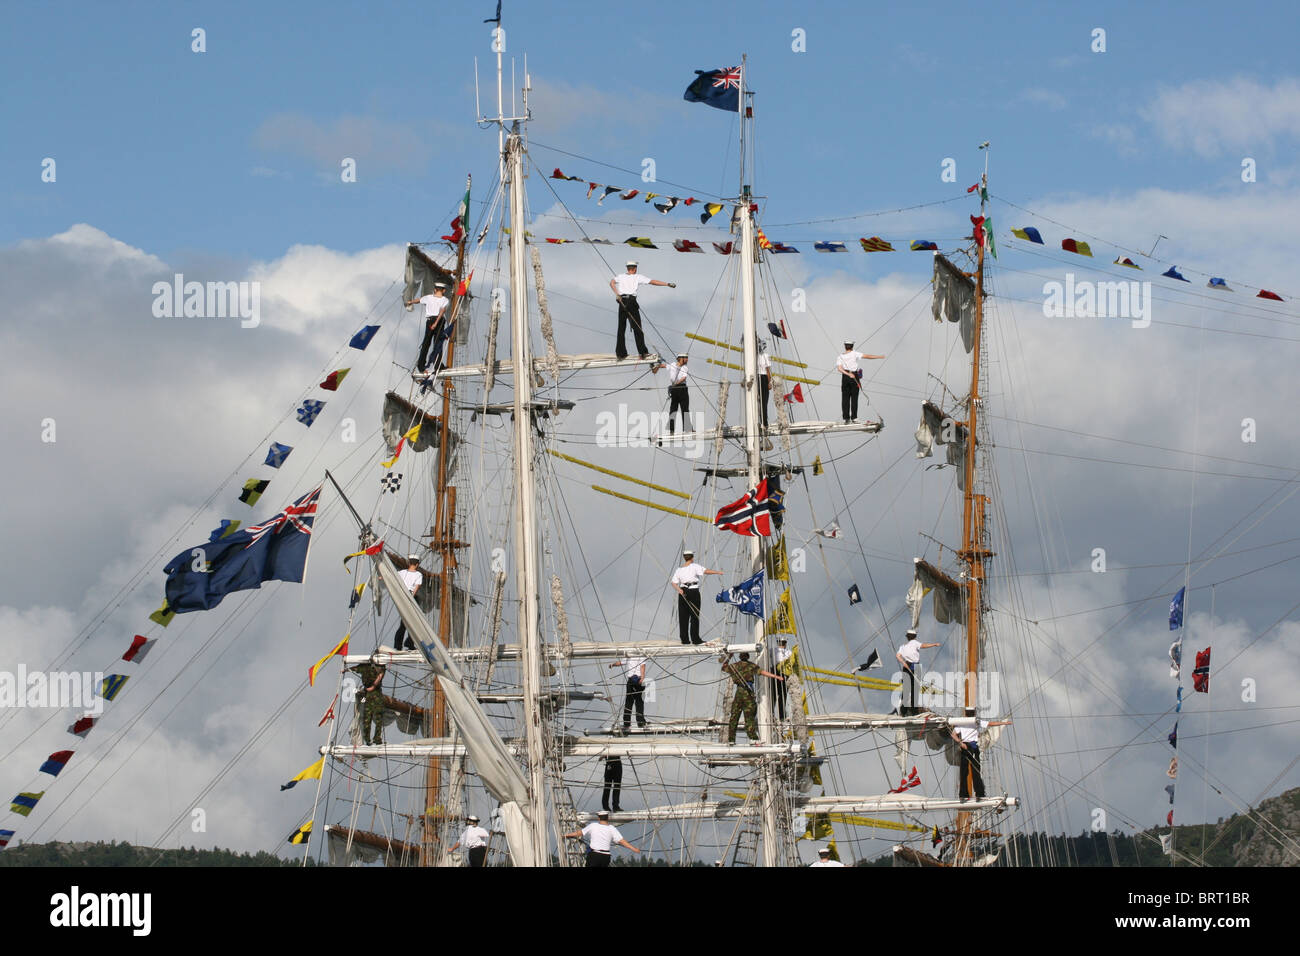 Royalist,The Tall Ships Races 2008, Bergen - Stock Image